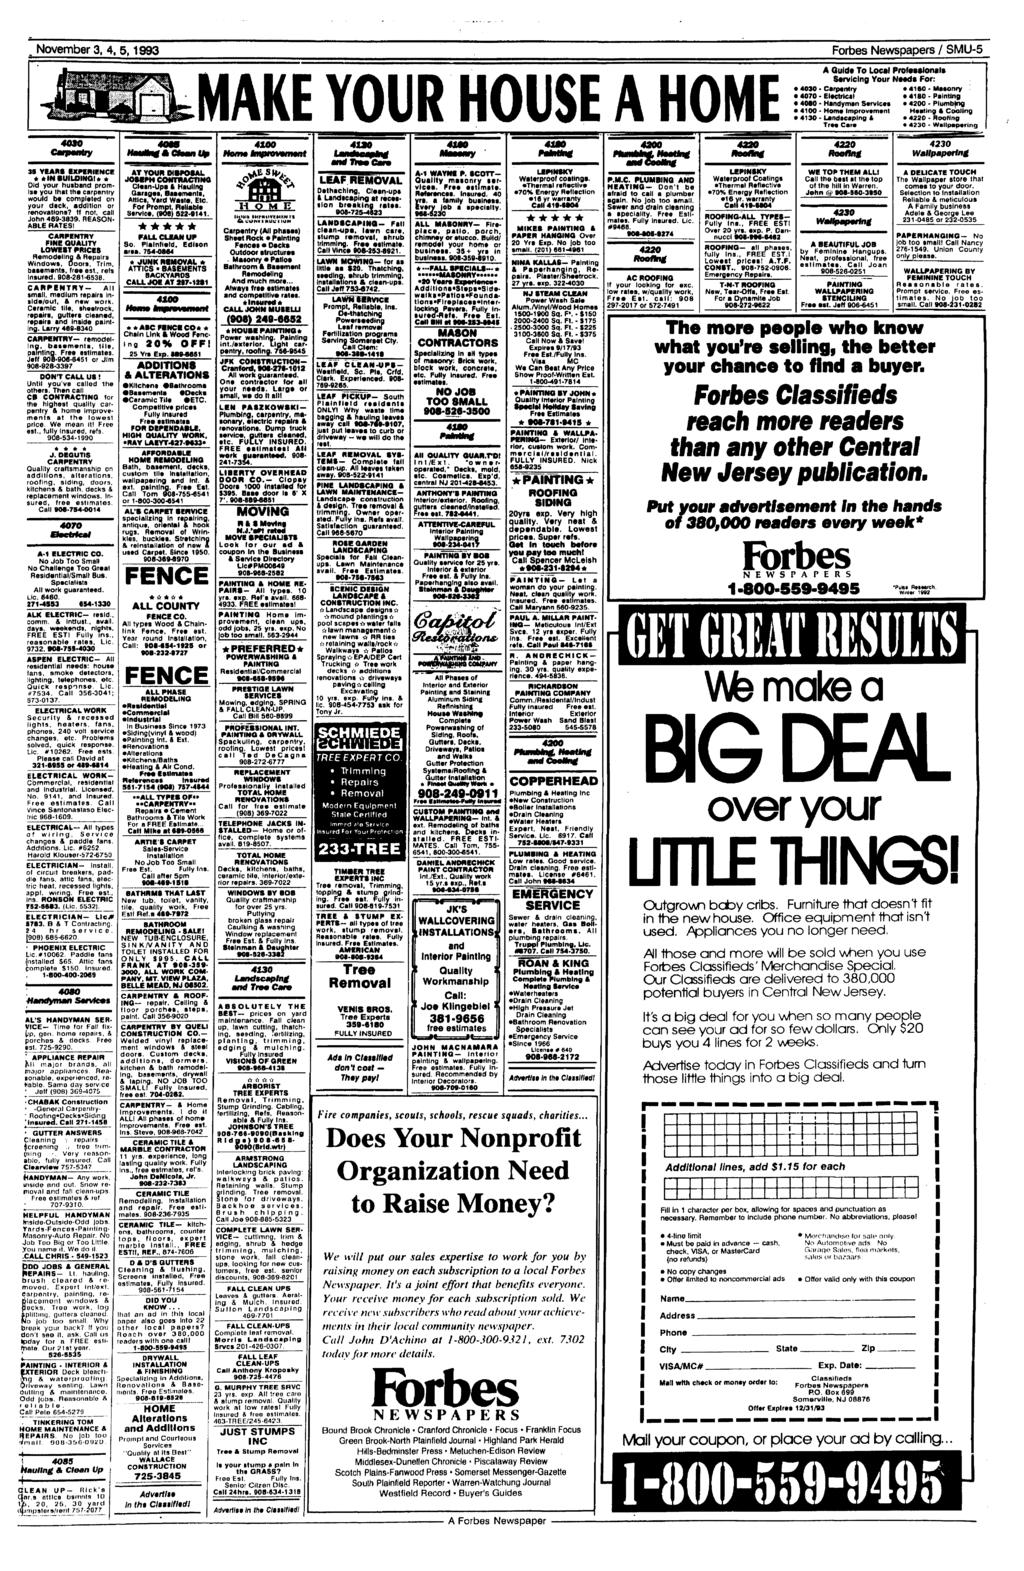 . November 3, 4, 5,1993 Forbes Newspapers / SMU-5 MAKE YOUR HOUSE A HOME A Quid* To Local Professional* Servicing Your Neadt For: 4030 Carpentry 4160 - Matonty 4070 - Eltetrlcil *41B0-Painting 4060 -